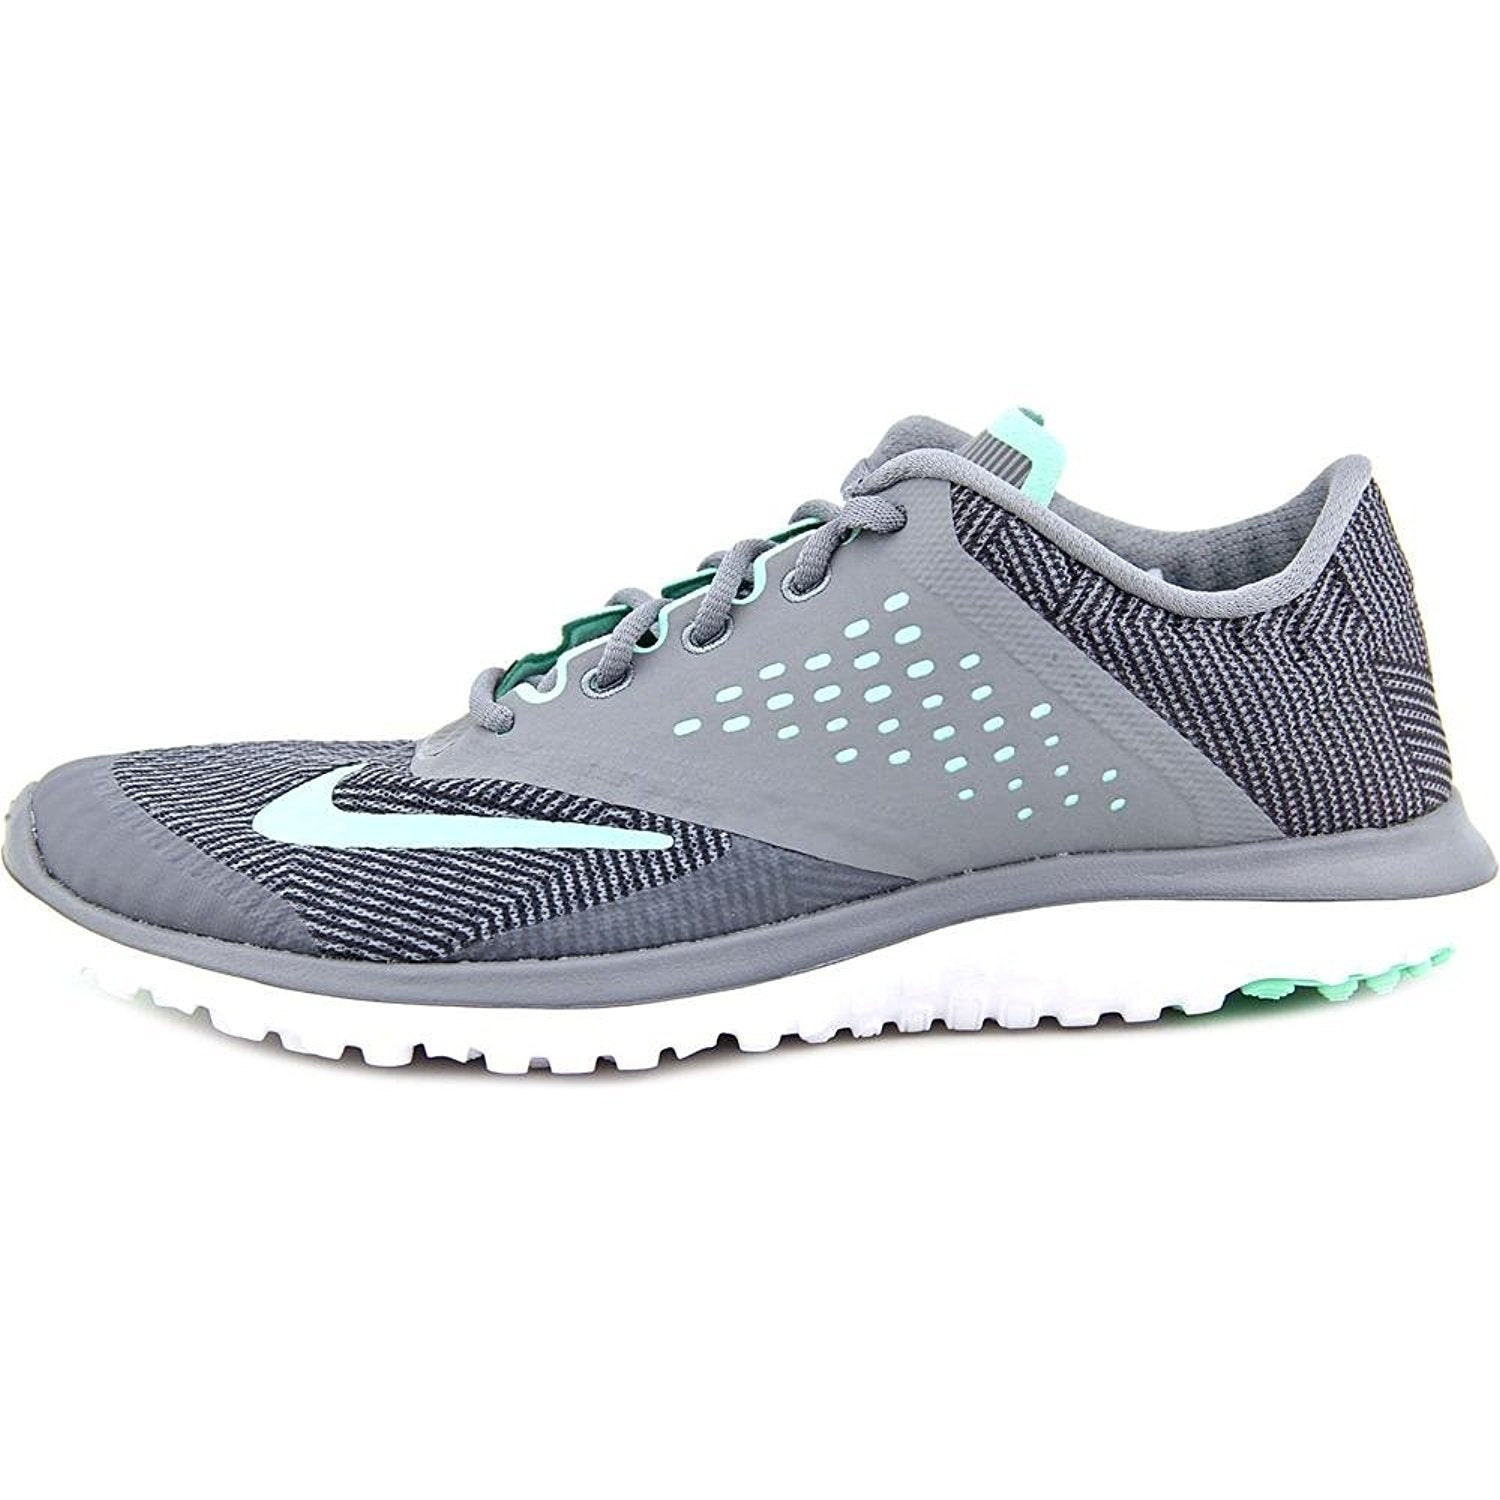 new arrival ccc5d 000a5 Shop New Nike Women s FS Lite Run 2 Premium Running Shoe Grey Green Glow -  Free Shipping Today - Overstock - 17950014